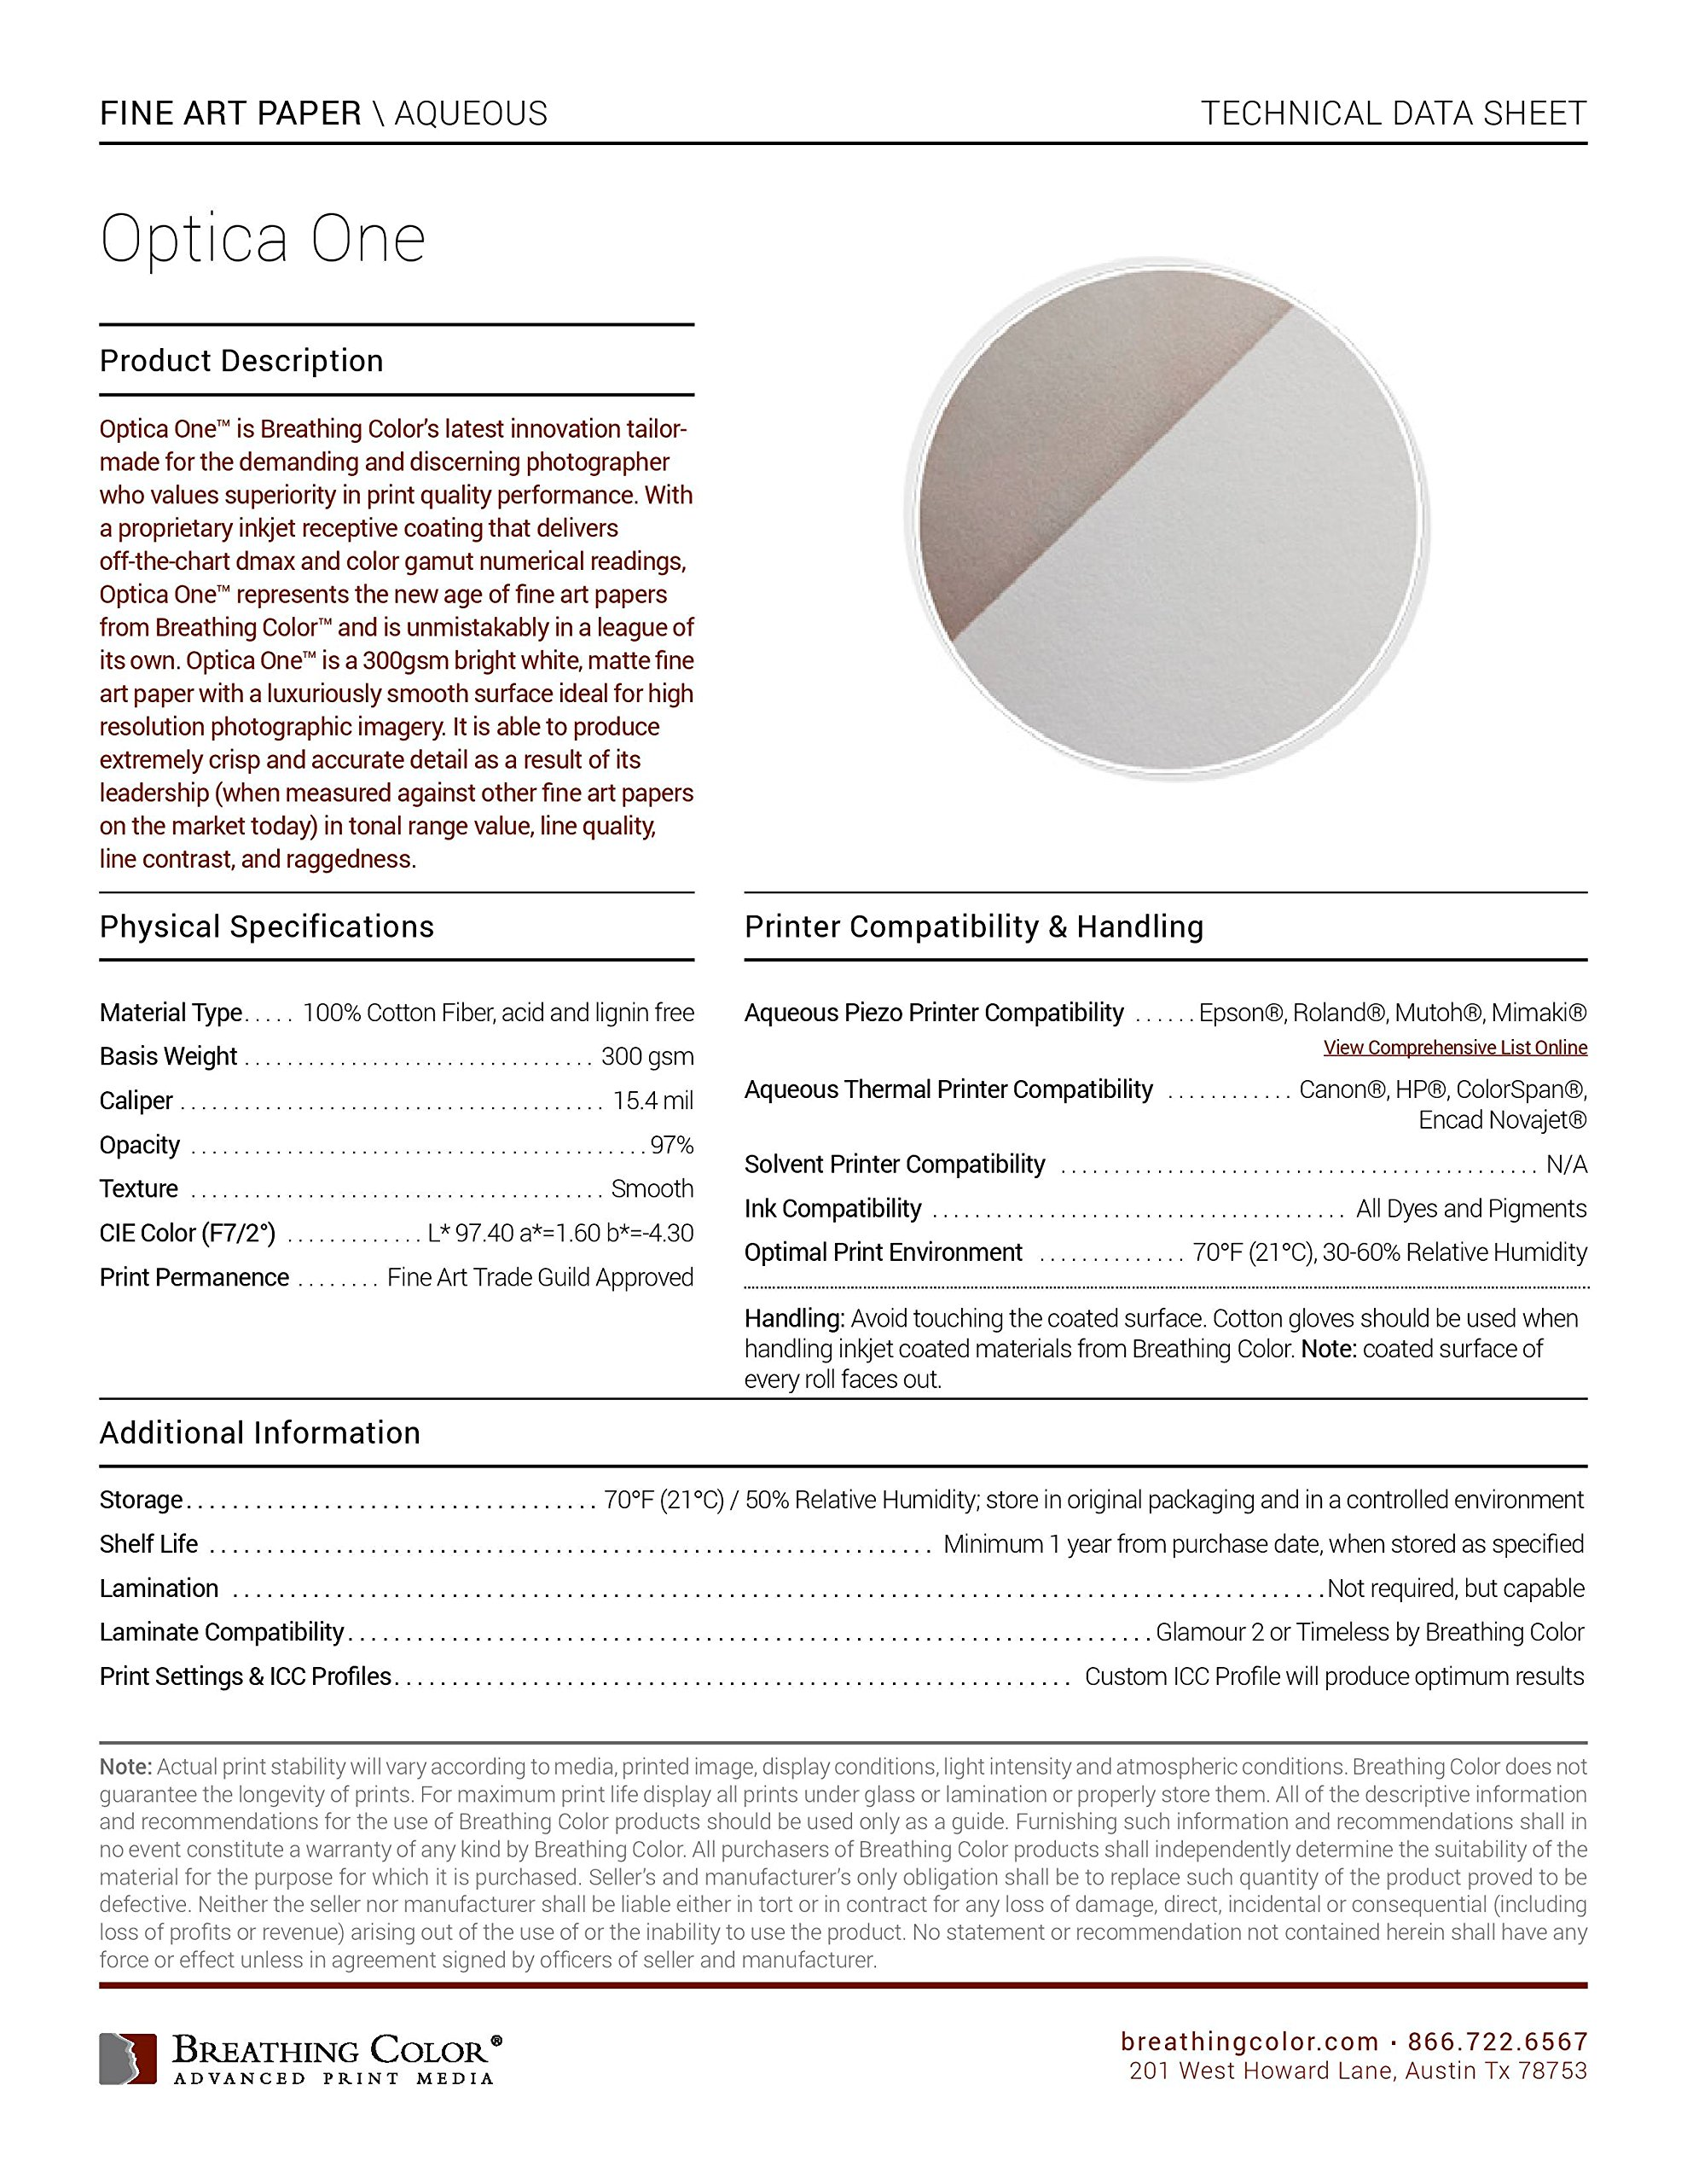 Optica One - Matte, 15.4 mil, 300gsm, Bright White, Fine Art Inkjet Paper, 44'' x 40' roll by Breathing Color (Image #3)